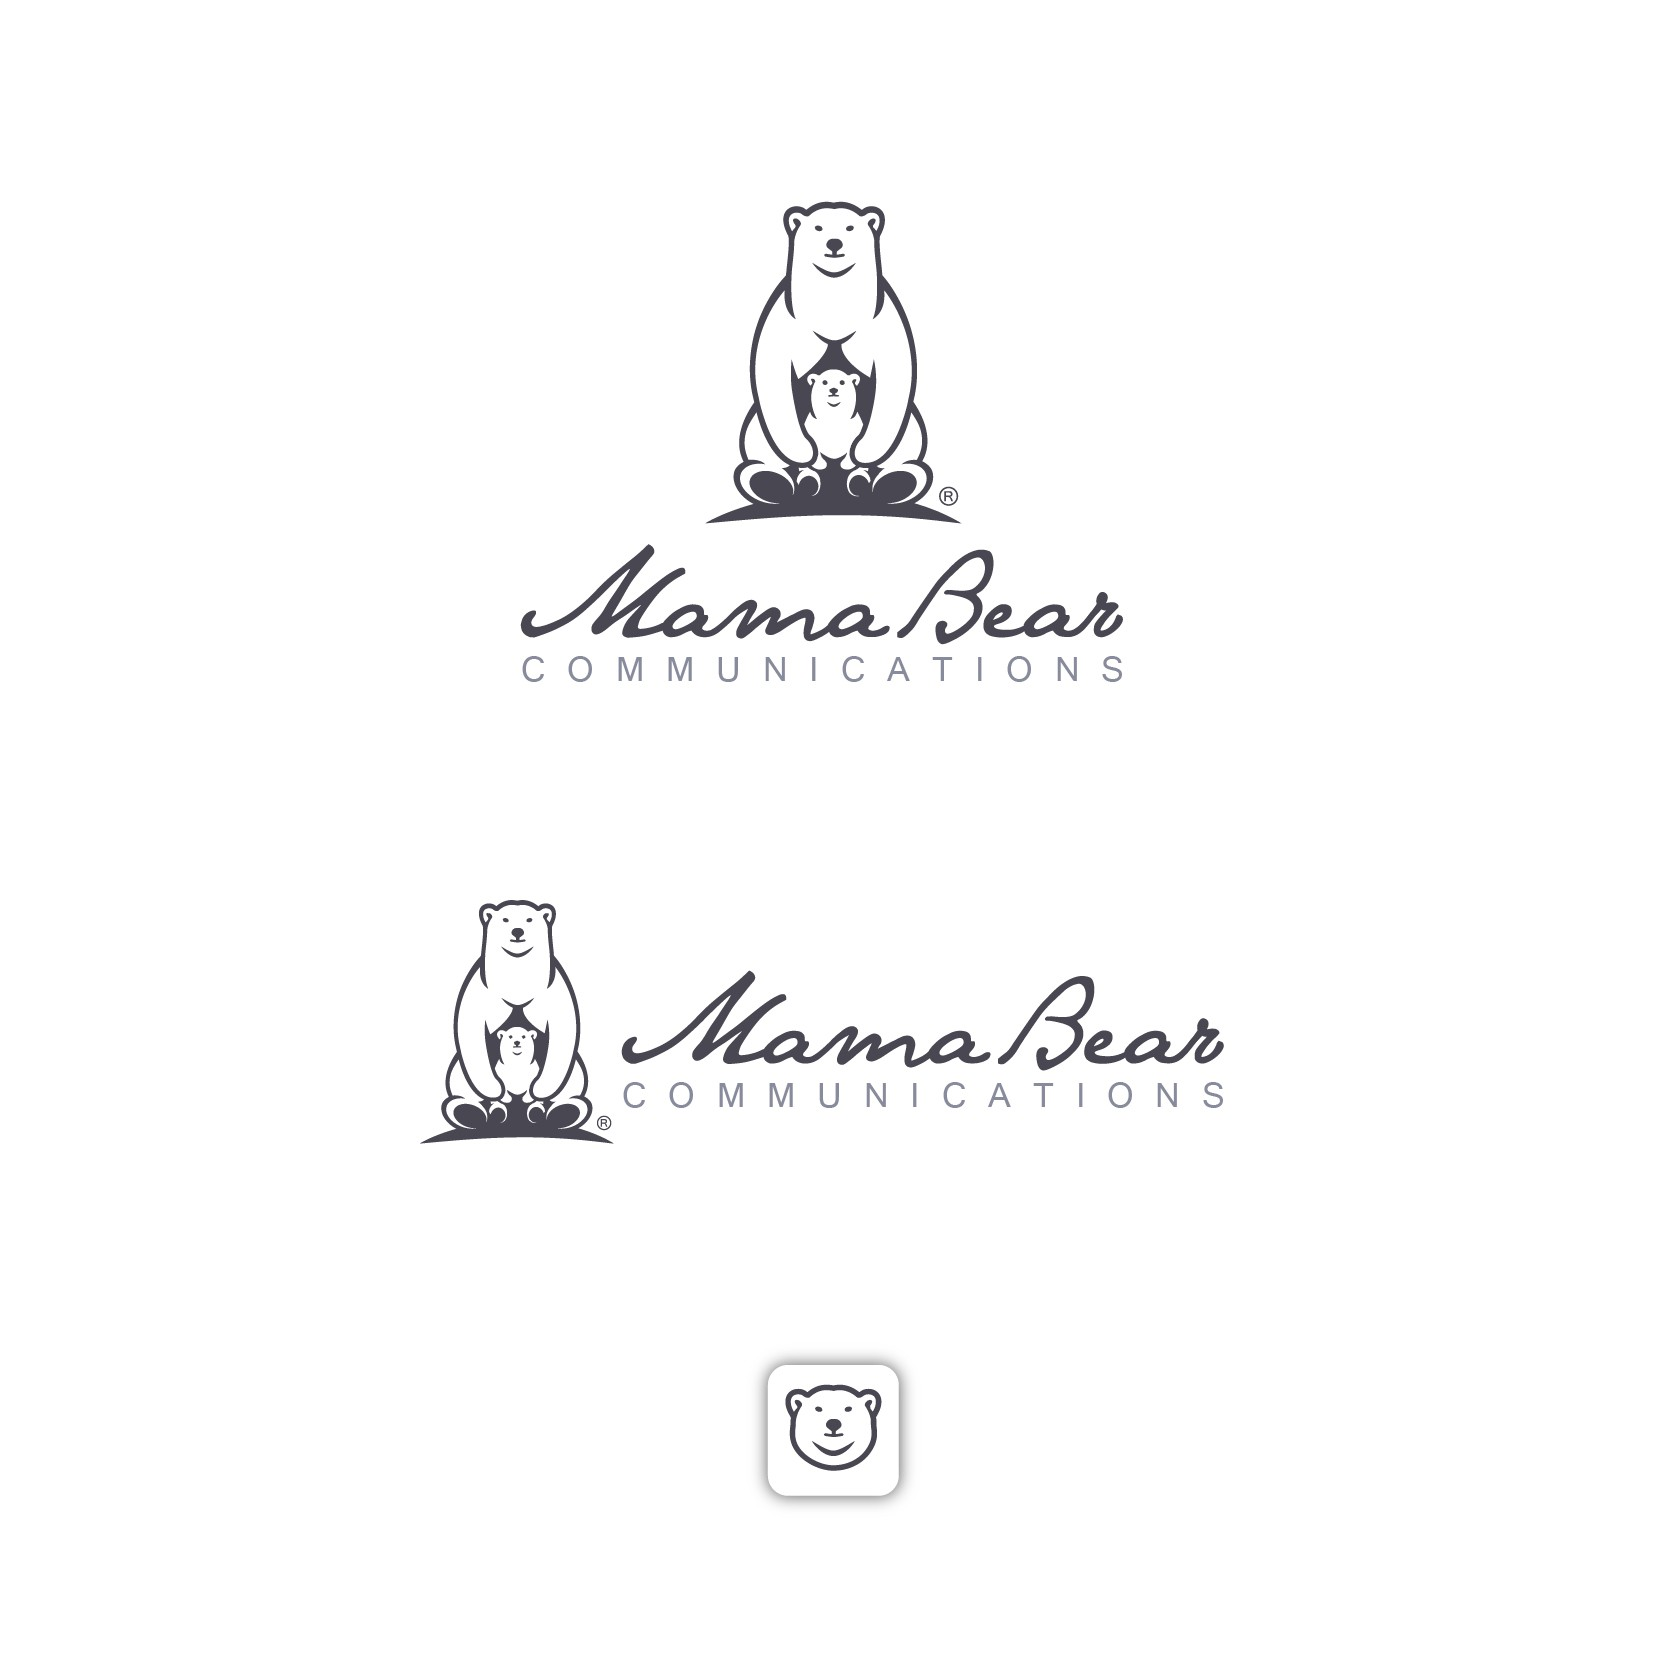 Create a logo and illustration for Mama Bear Communications